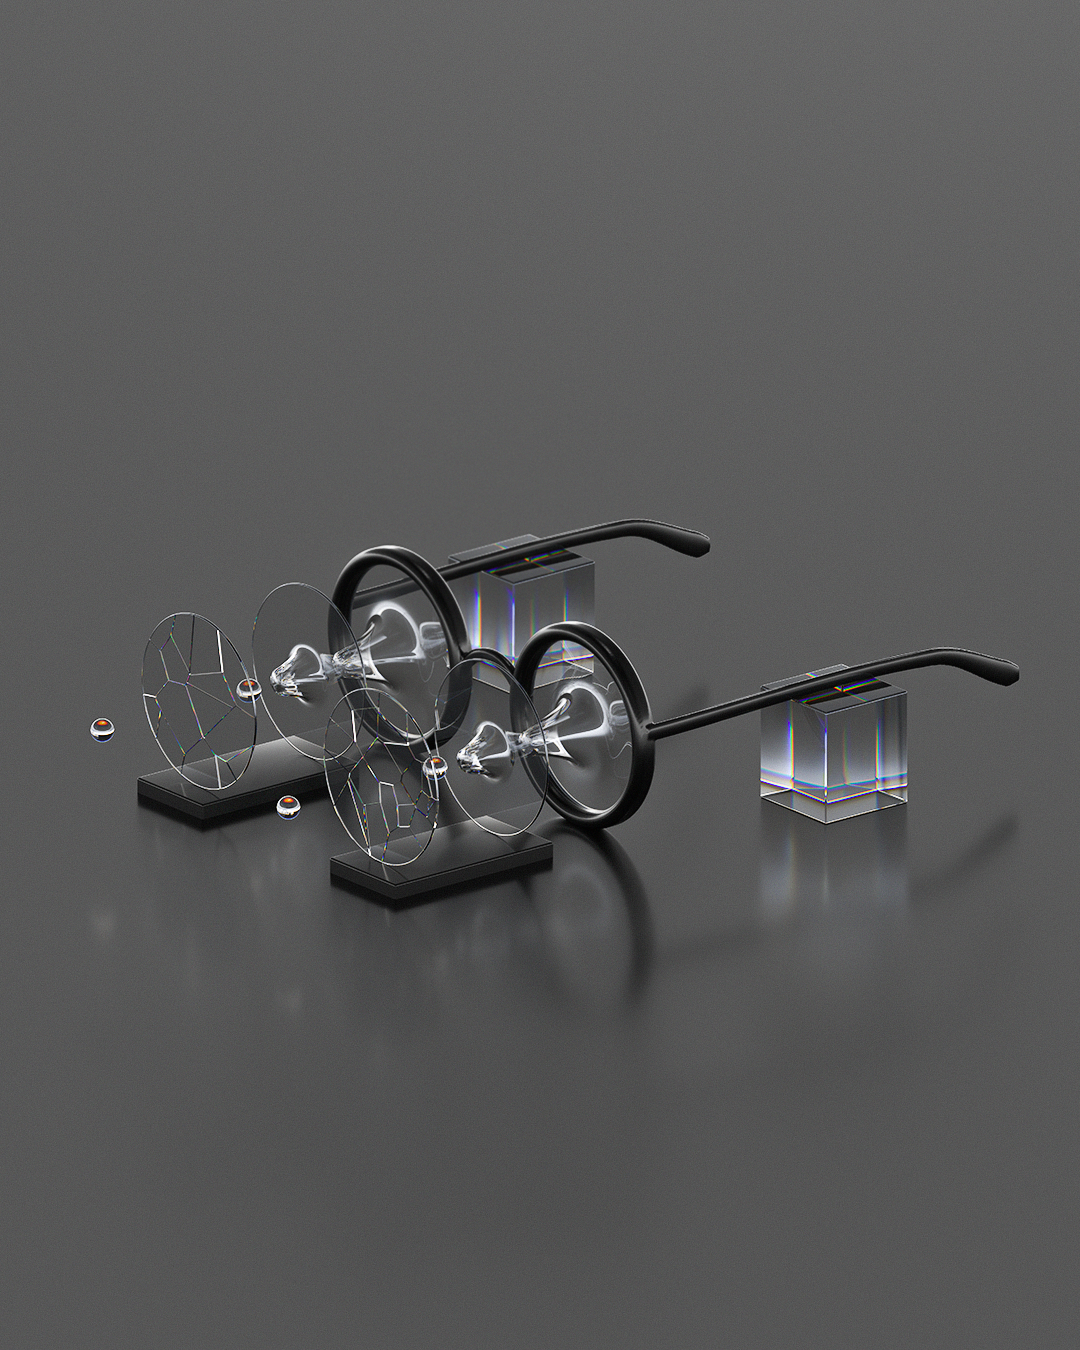 Bubble_Glasses1_3.png